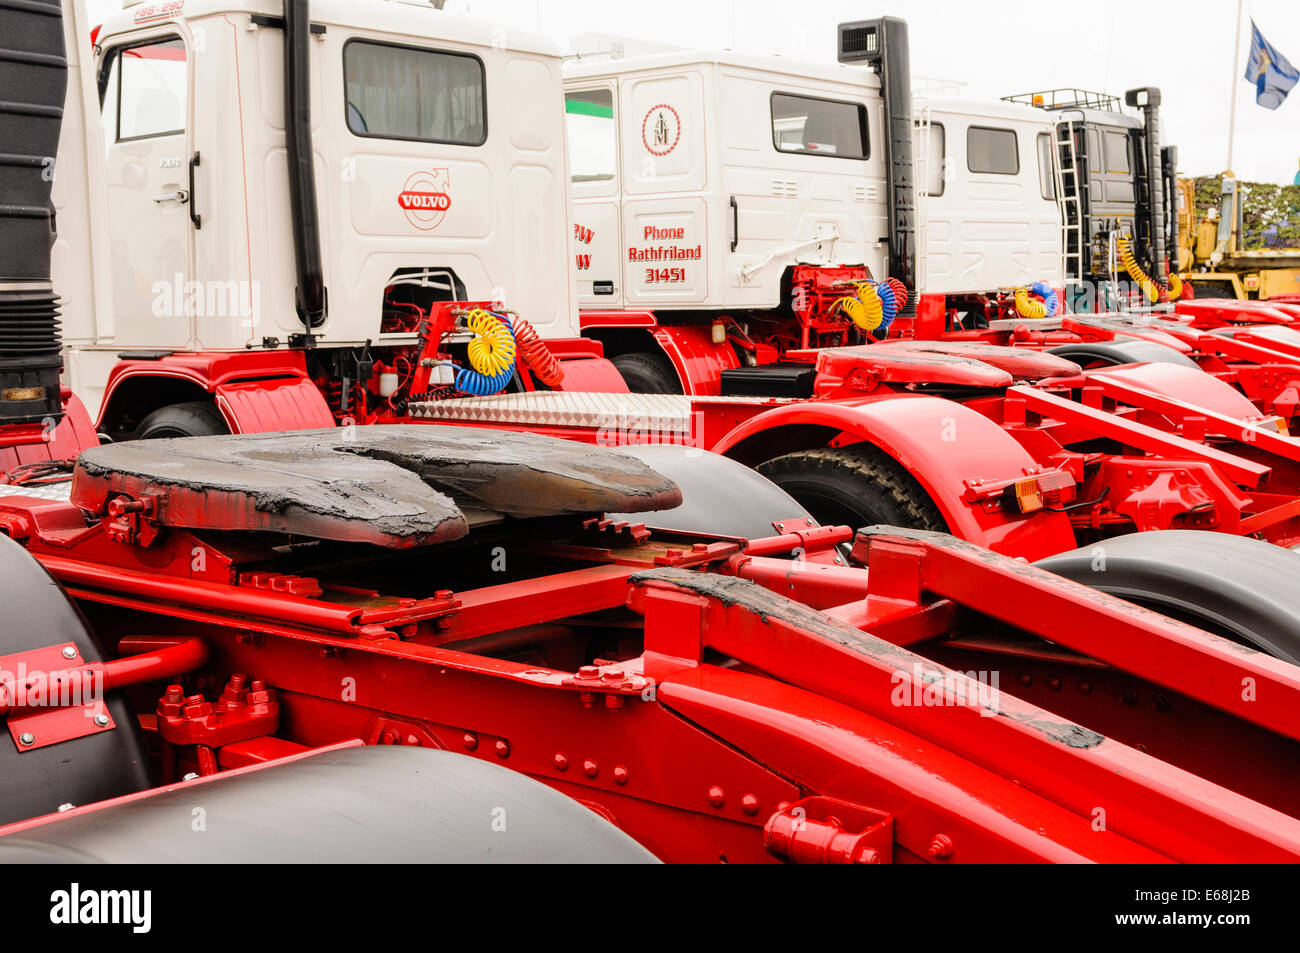 Articulating (rotating) hitches on tractor units of articulated lorries - Stock Image